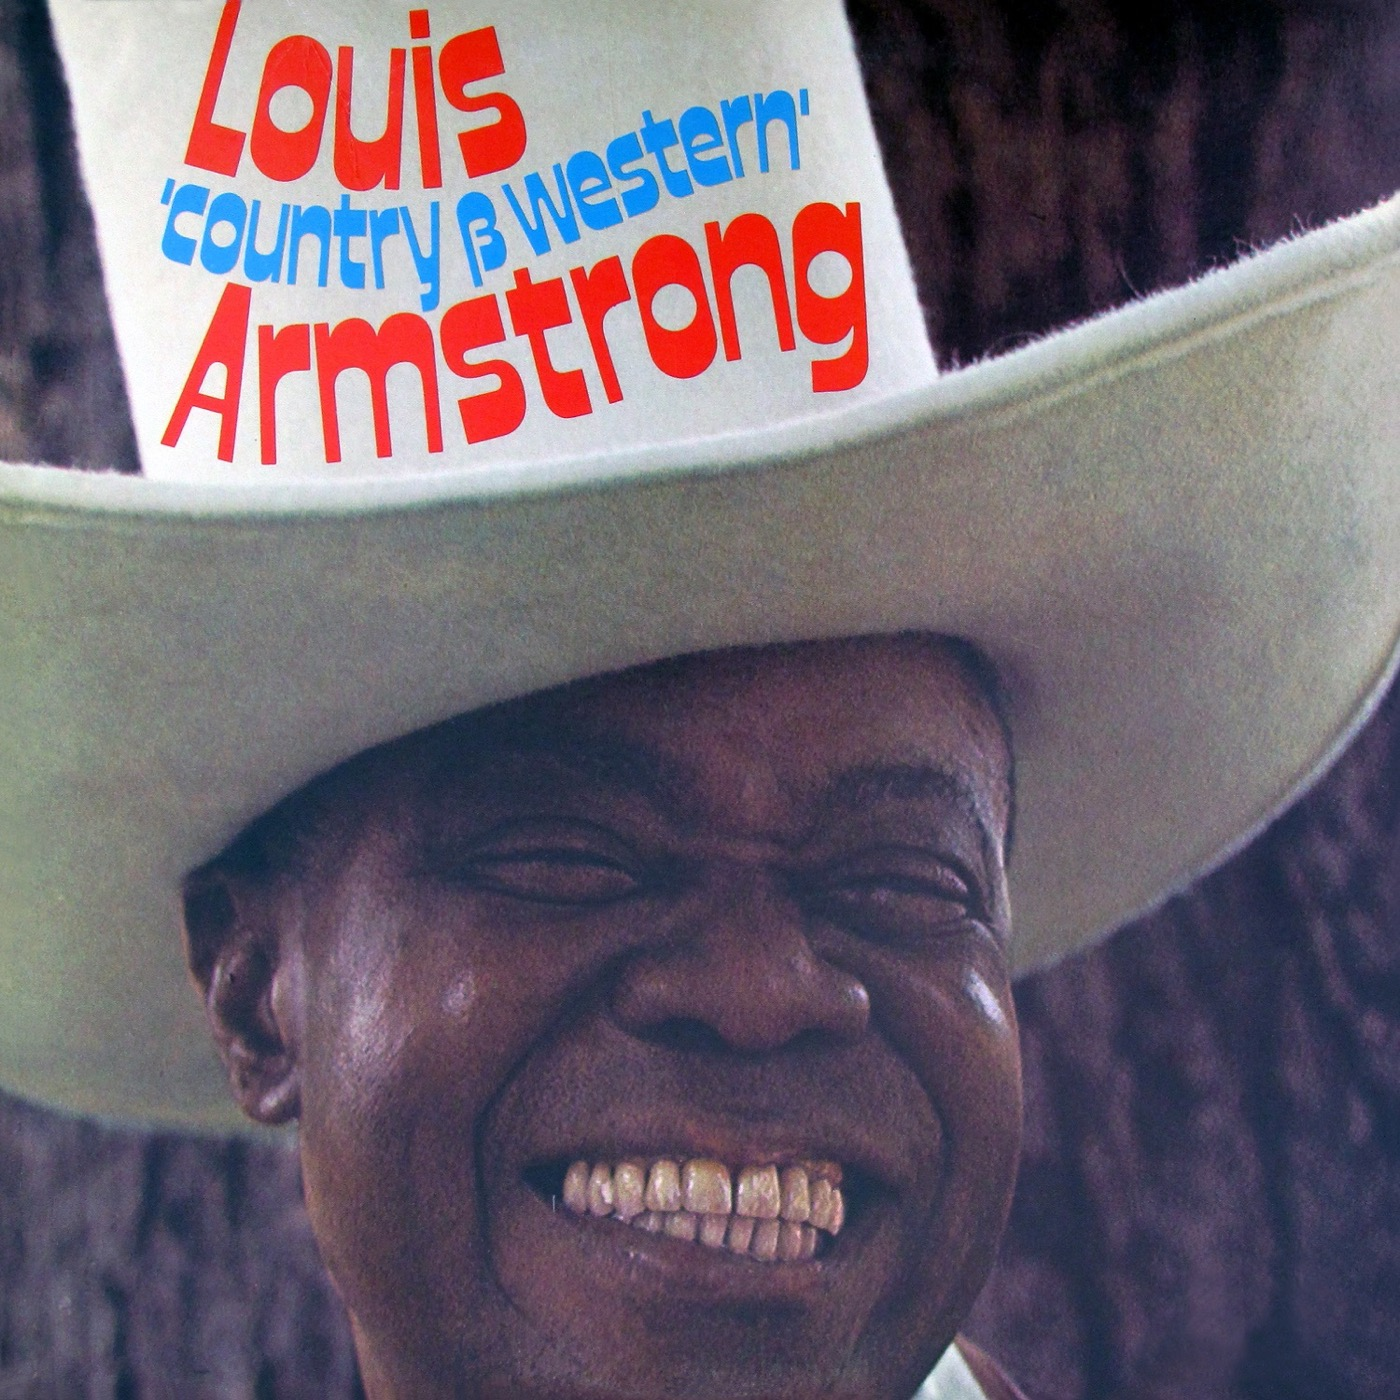 Louis Armstrong - Crystal Chandeliers Lyrics Meaning